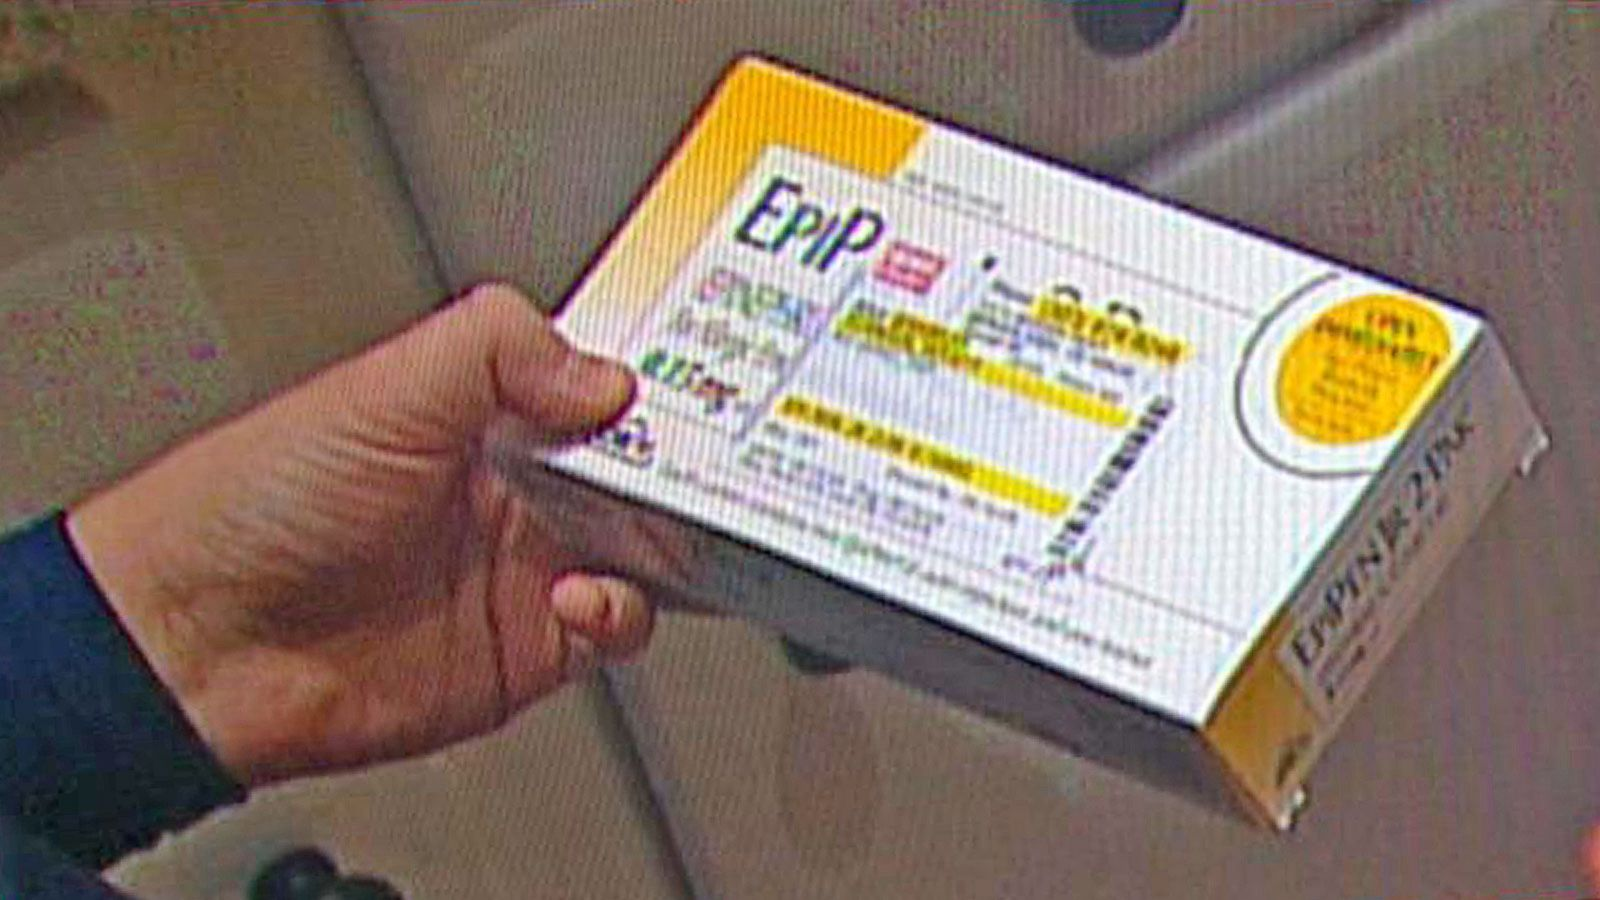 Price hike adds financial burden to EpiPen users